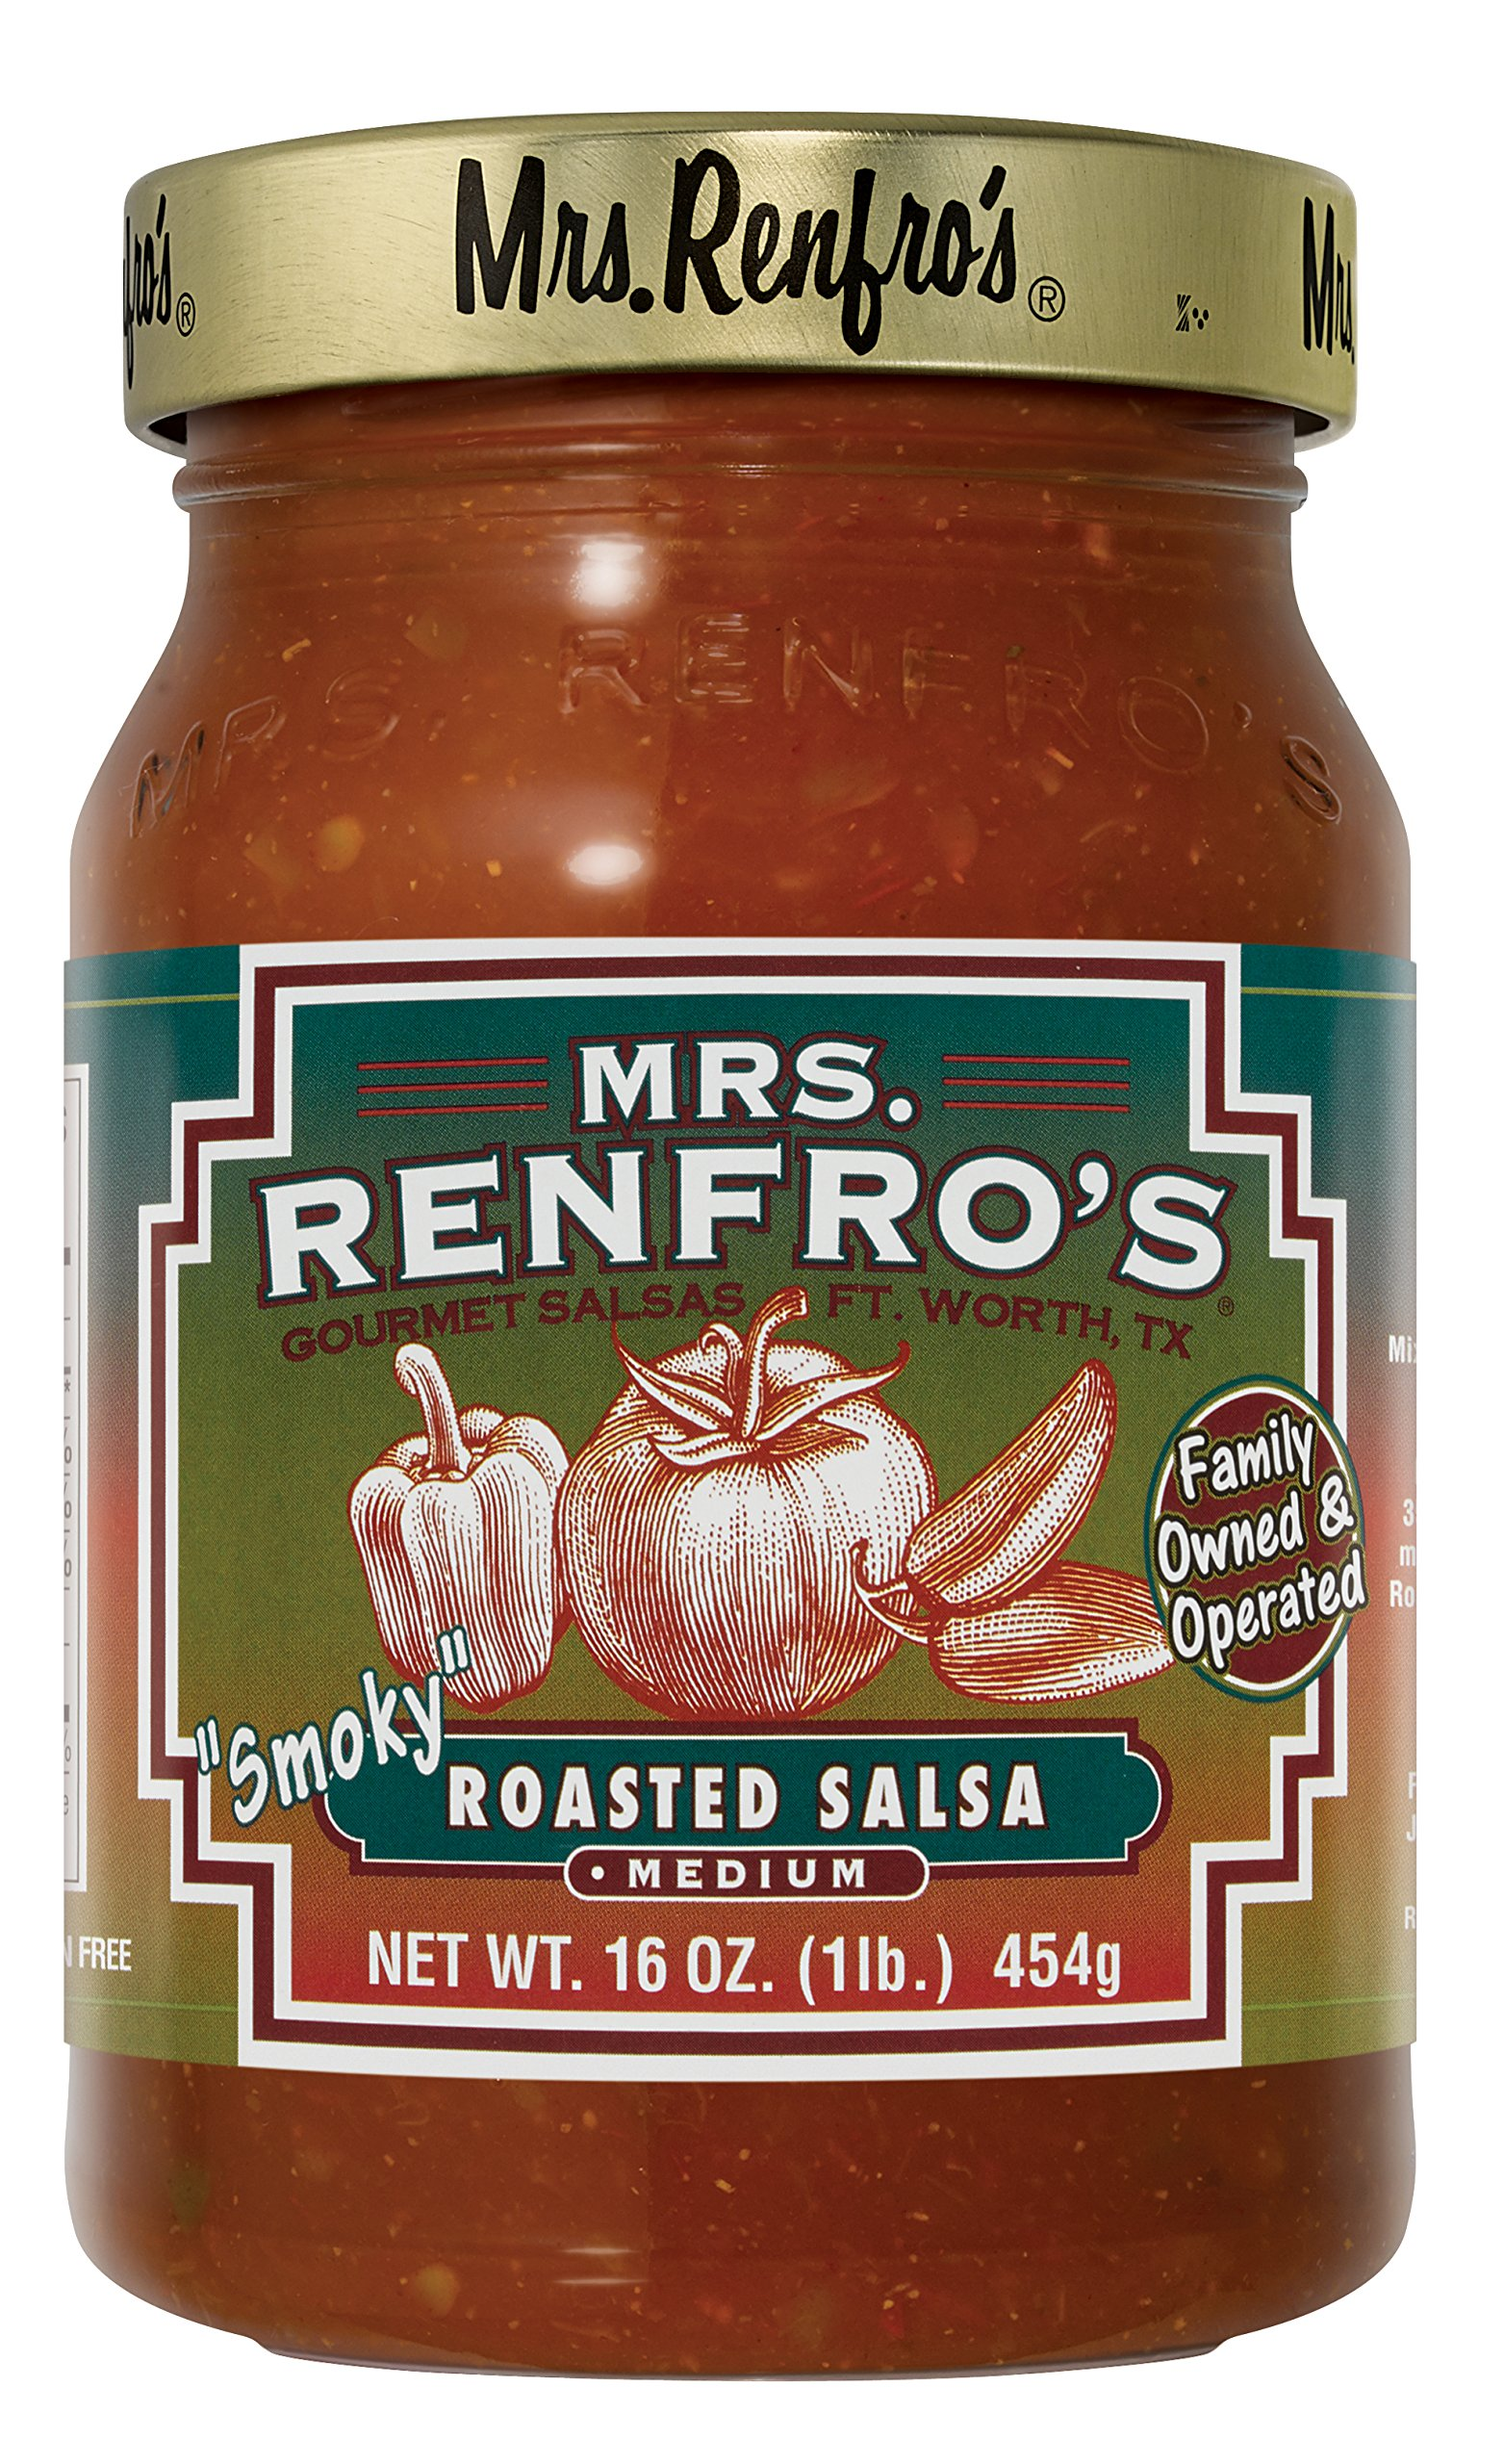 Mrs. Renfro's Smoky Roasted Salsa, Gluten Free, No Sugar Added, 16 oz Jar, Pack of 4 by Mrs. Renfro's